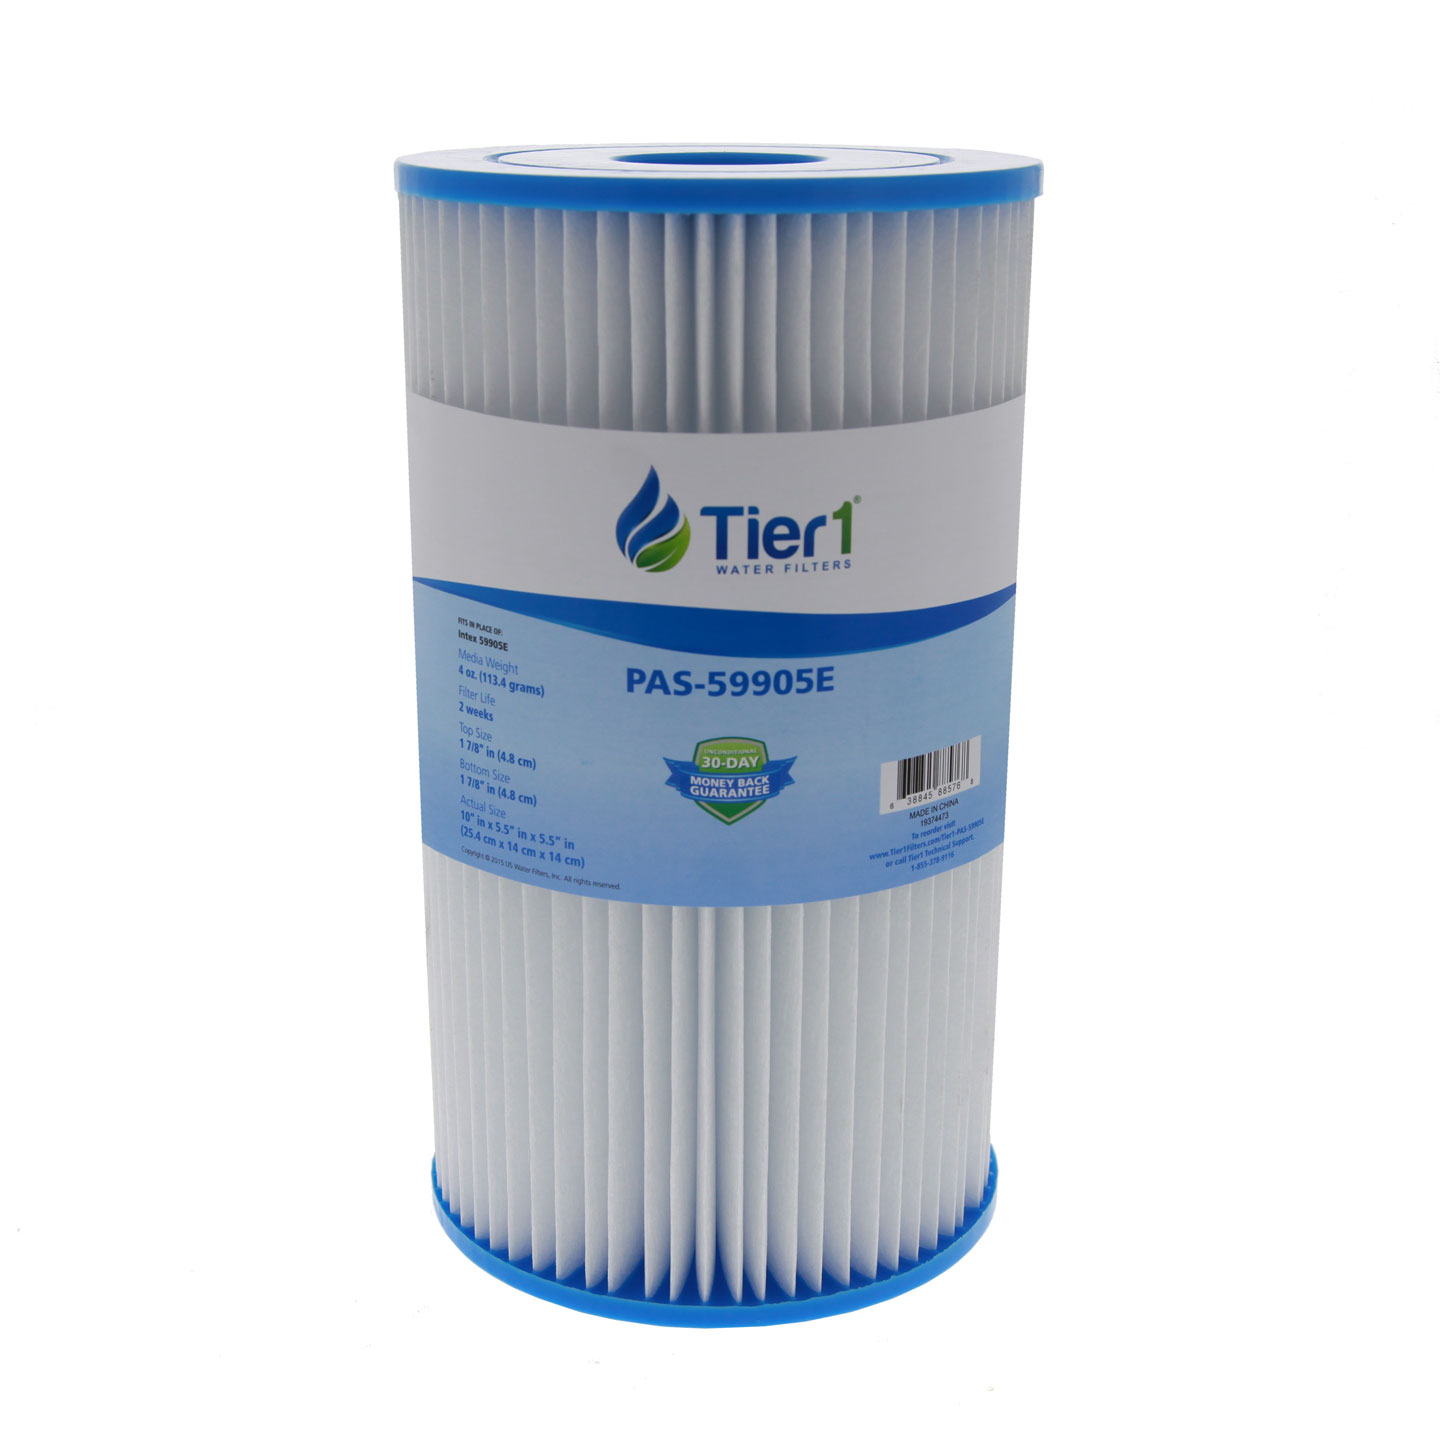 Tier1 Replacement for Type B Intex 59005E Type B Easy Set Pools Filter Pump Cartridge 6 Pack